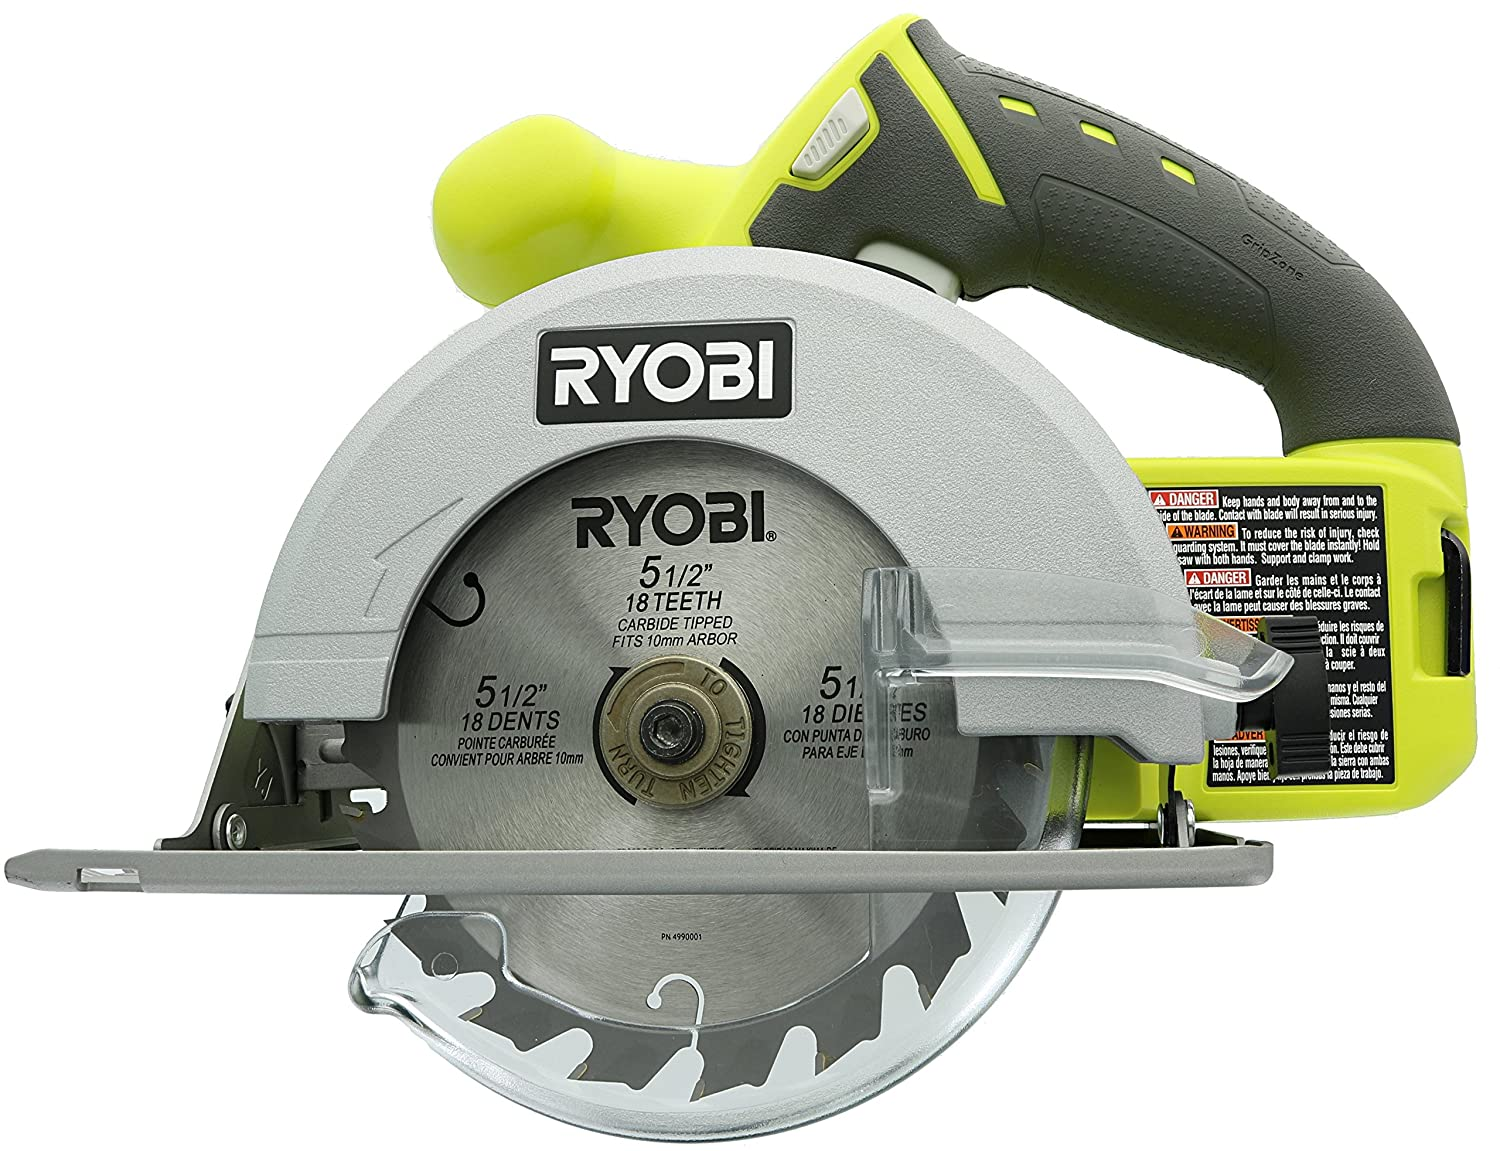 Ryobi p504g one 18 v lithium ion cordless 5 12 inch circular saw w ryobi p504g one 18 v lithium ion cordless 5 12 inch circular saw w carbide tip blade battery not included power tool only power circular saws greentooth Images